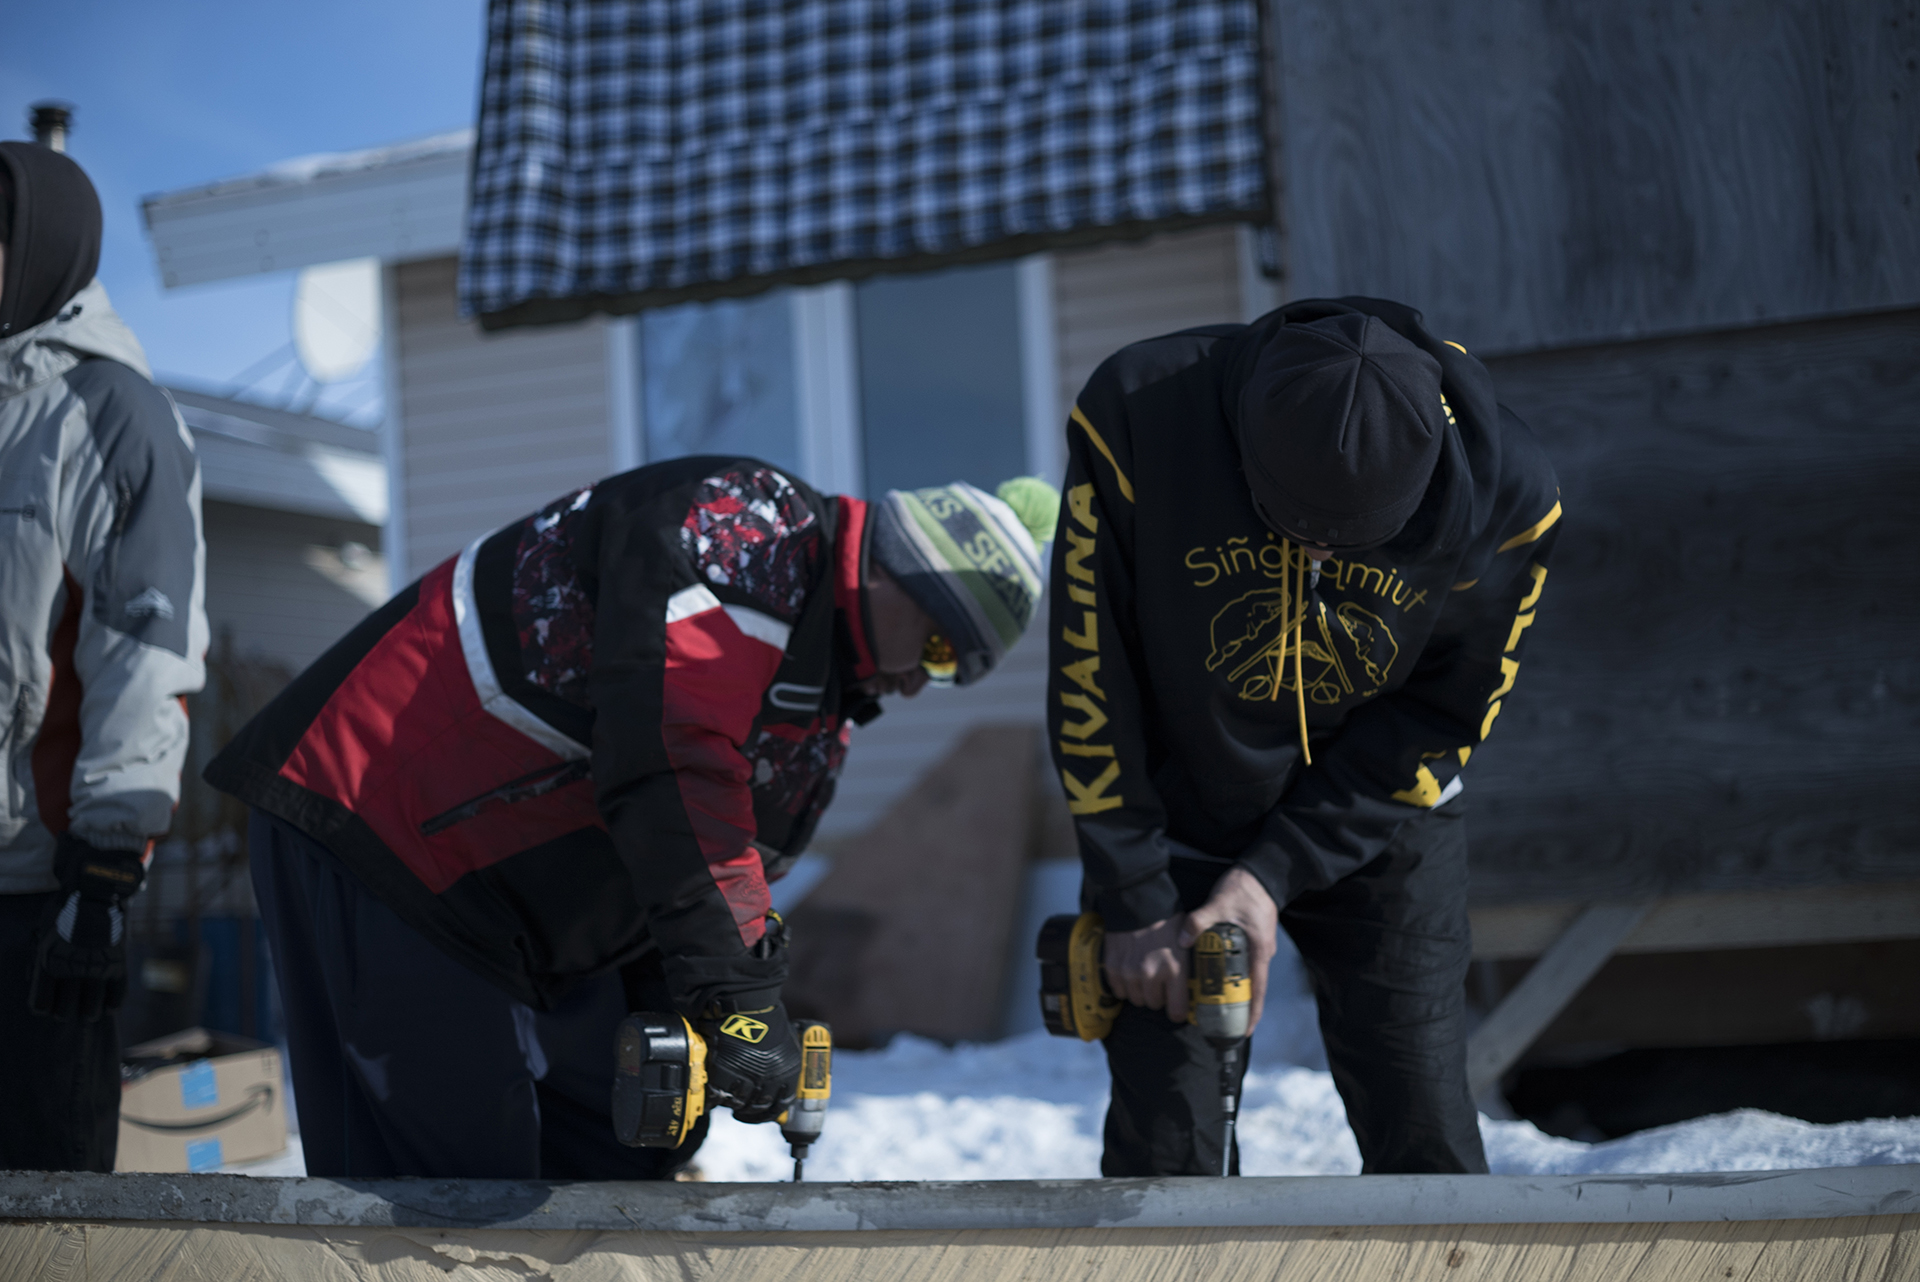 Kivalina residents working on whaling equipment. (Hans Glick/Global Citizen)